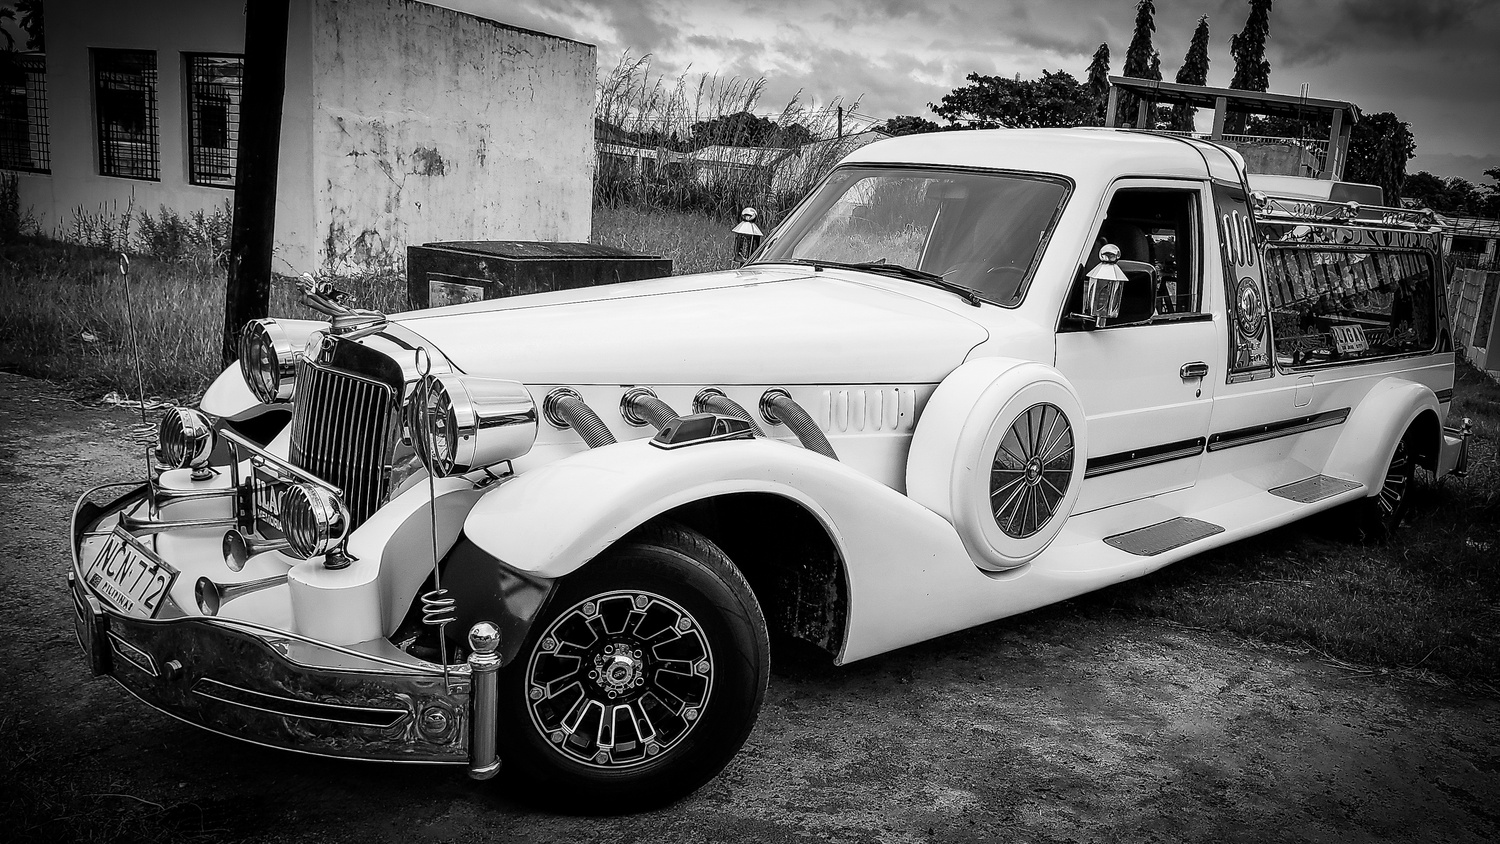 Pimp my hearse. by Andres Entuna